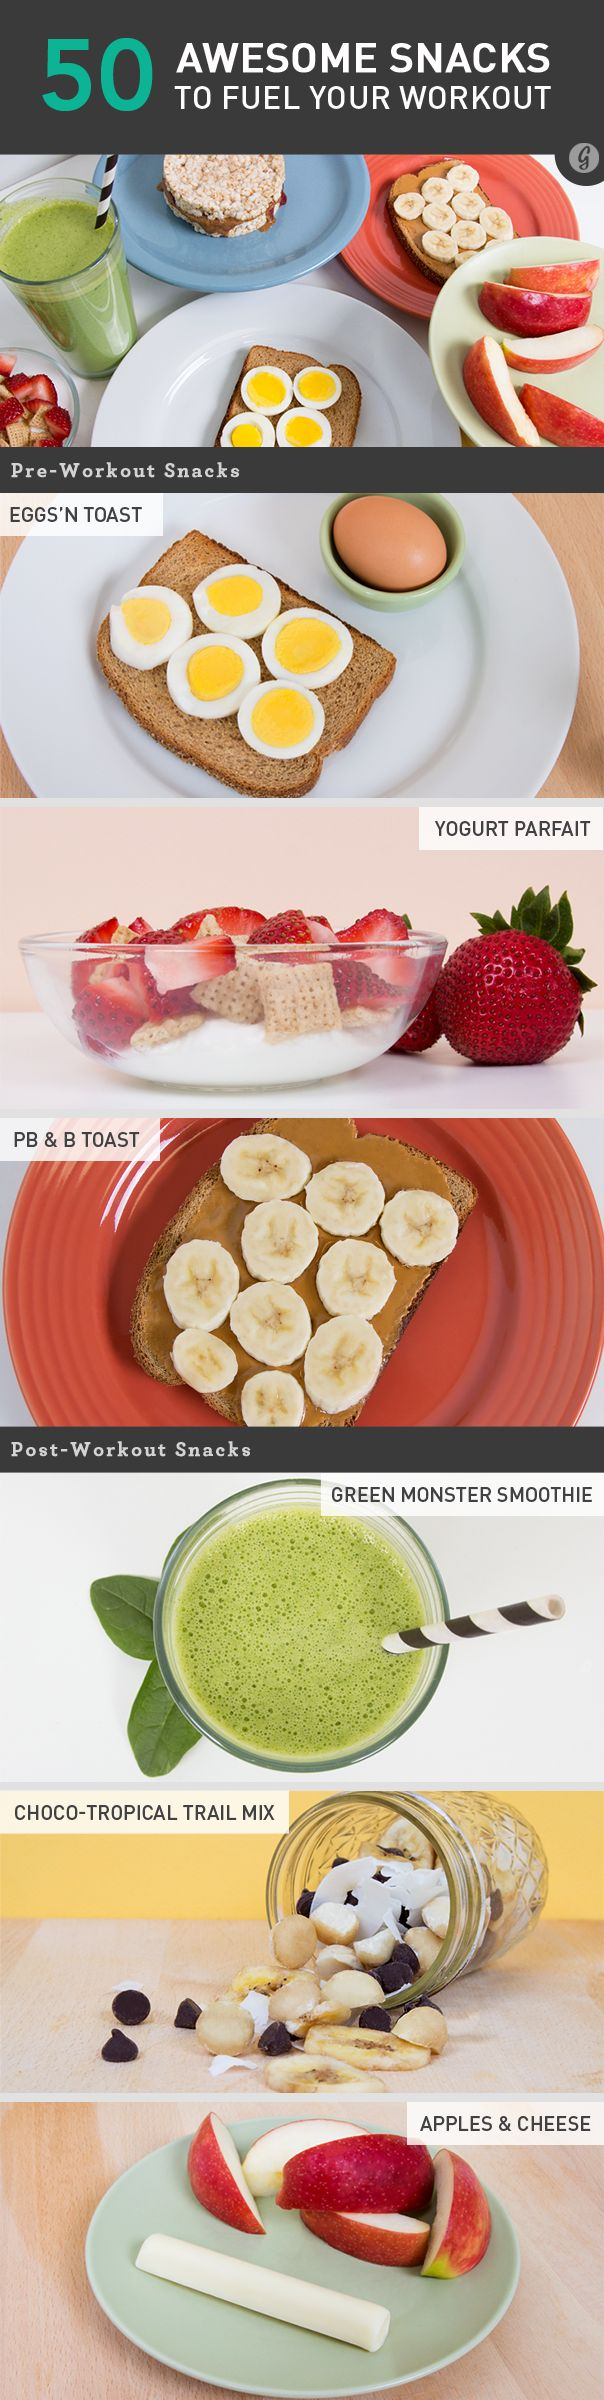 Pre and Post workout snacks.